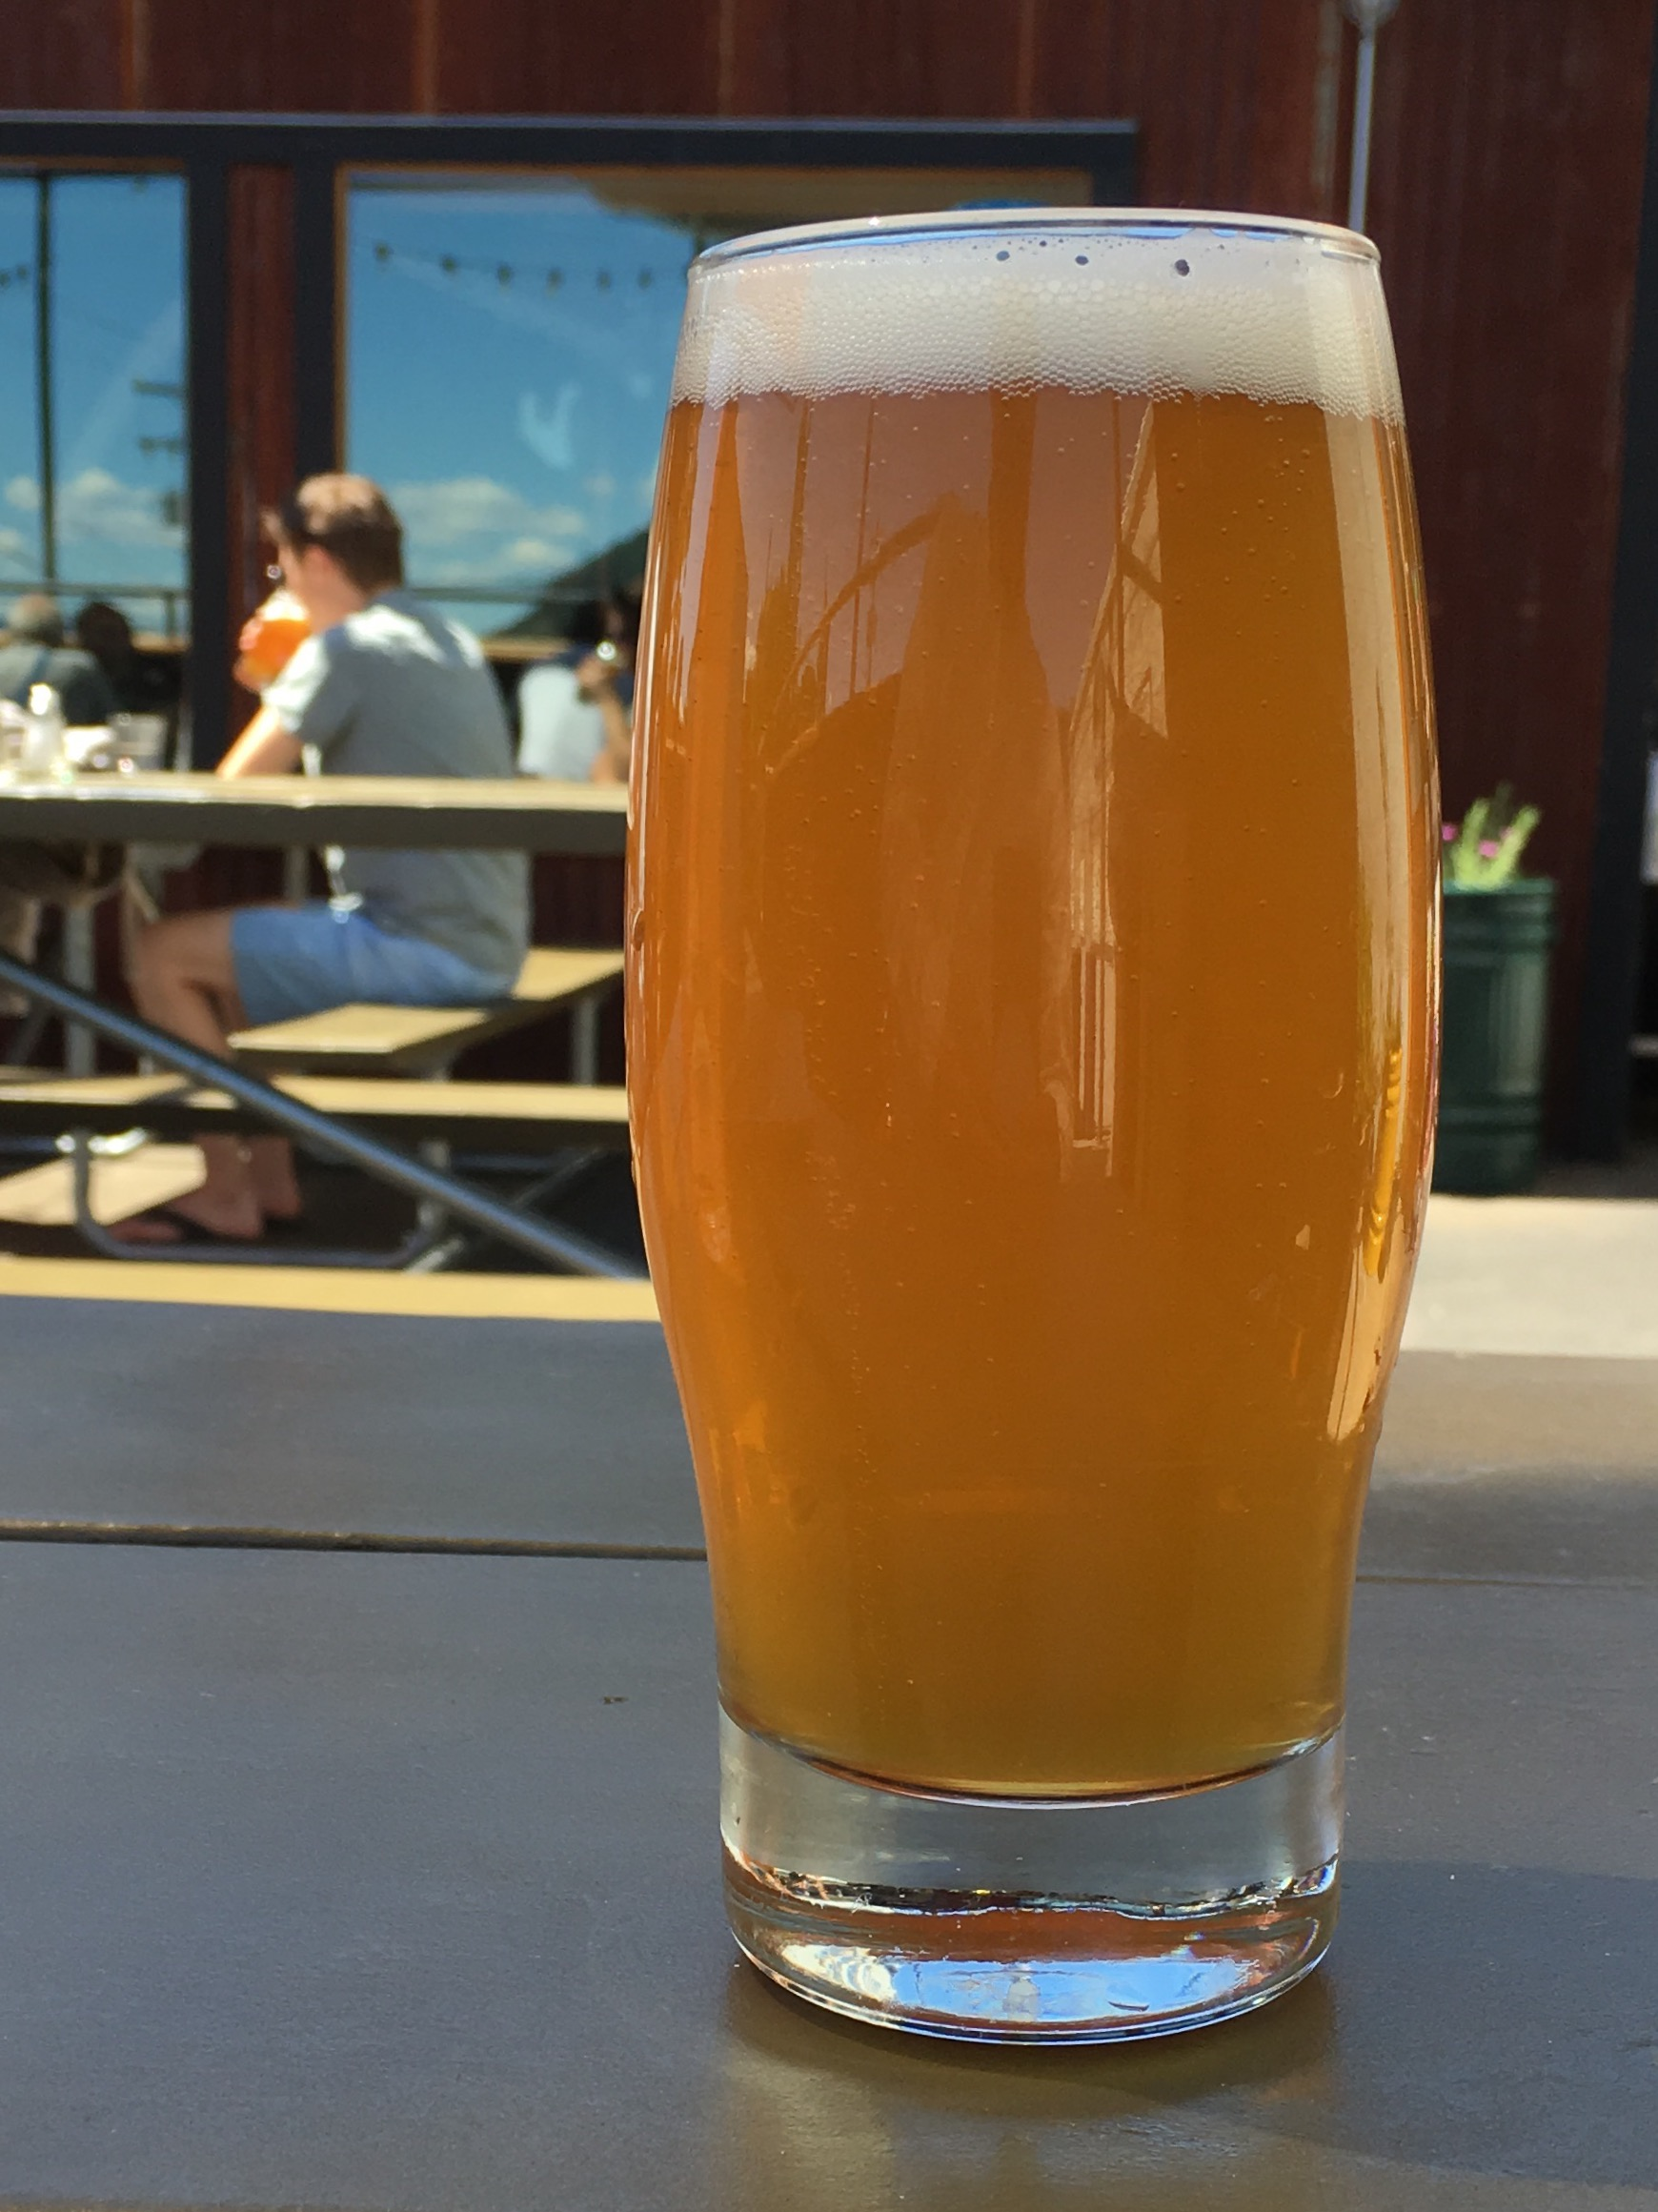 A pint of Everybody's Brewing Hoppy AF Double IPA at its pub in White Salmon, Washington.